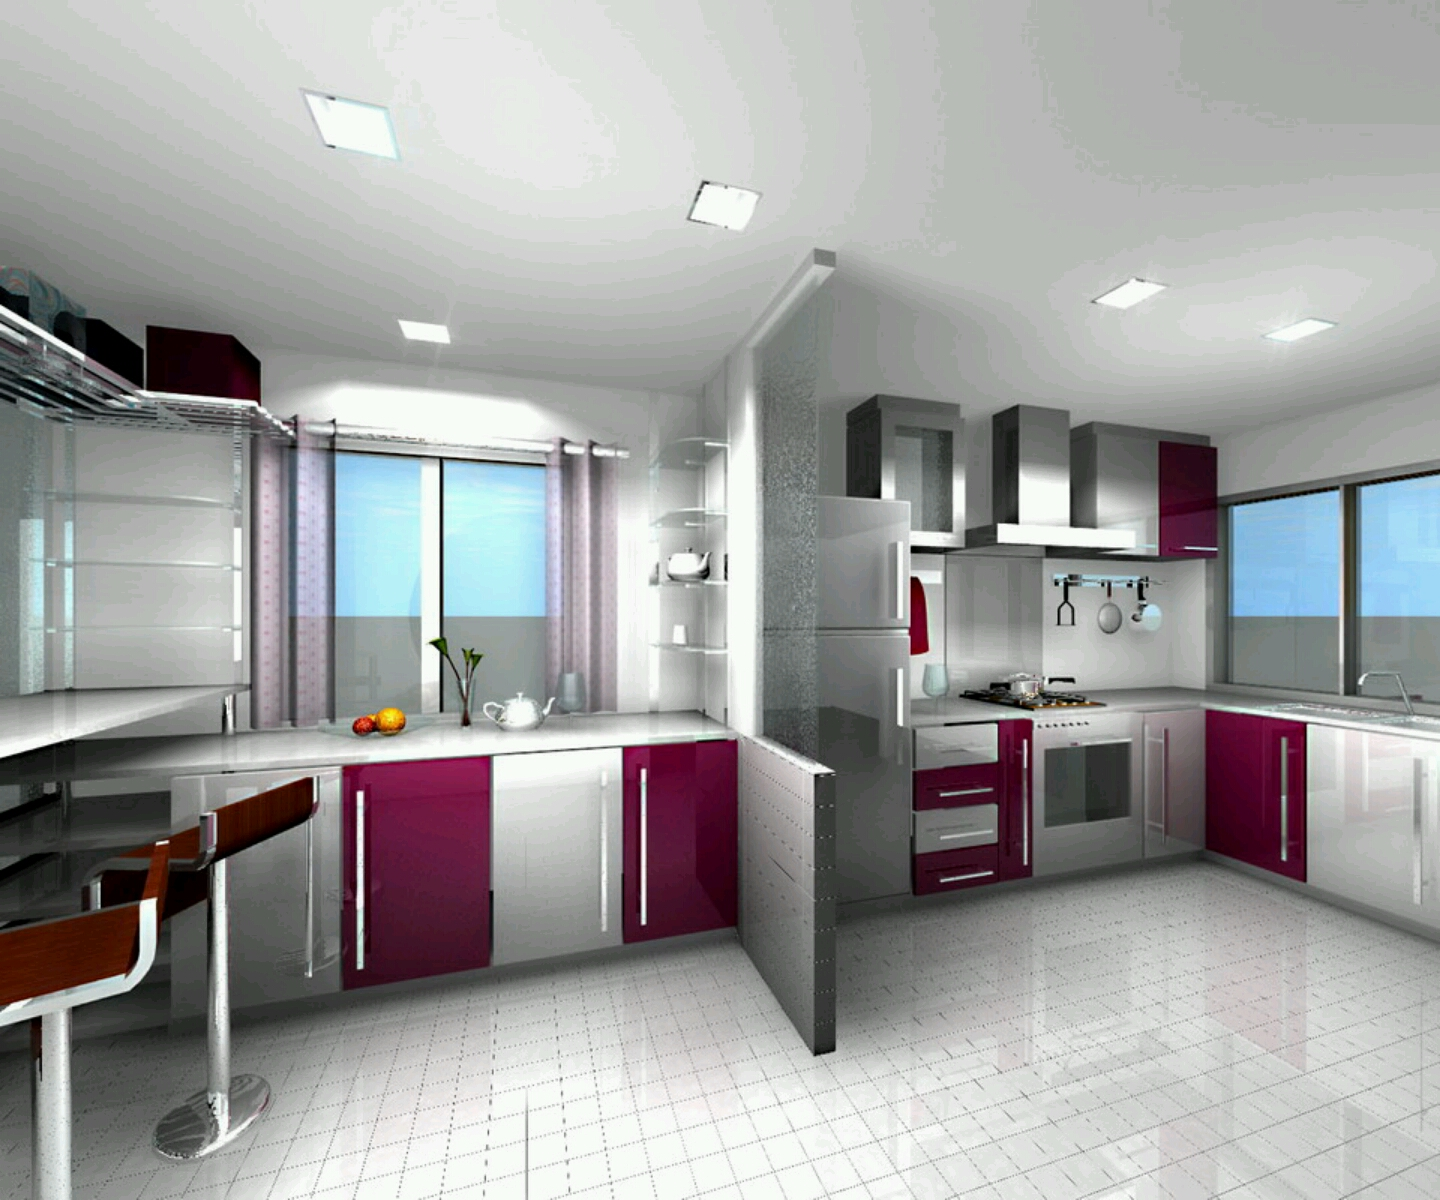 Home decor 2012 modern homes ultra modern kitchen designs for New kitchen designs 2012